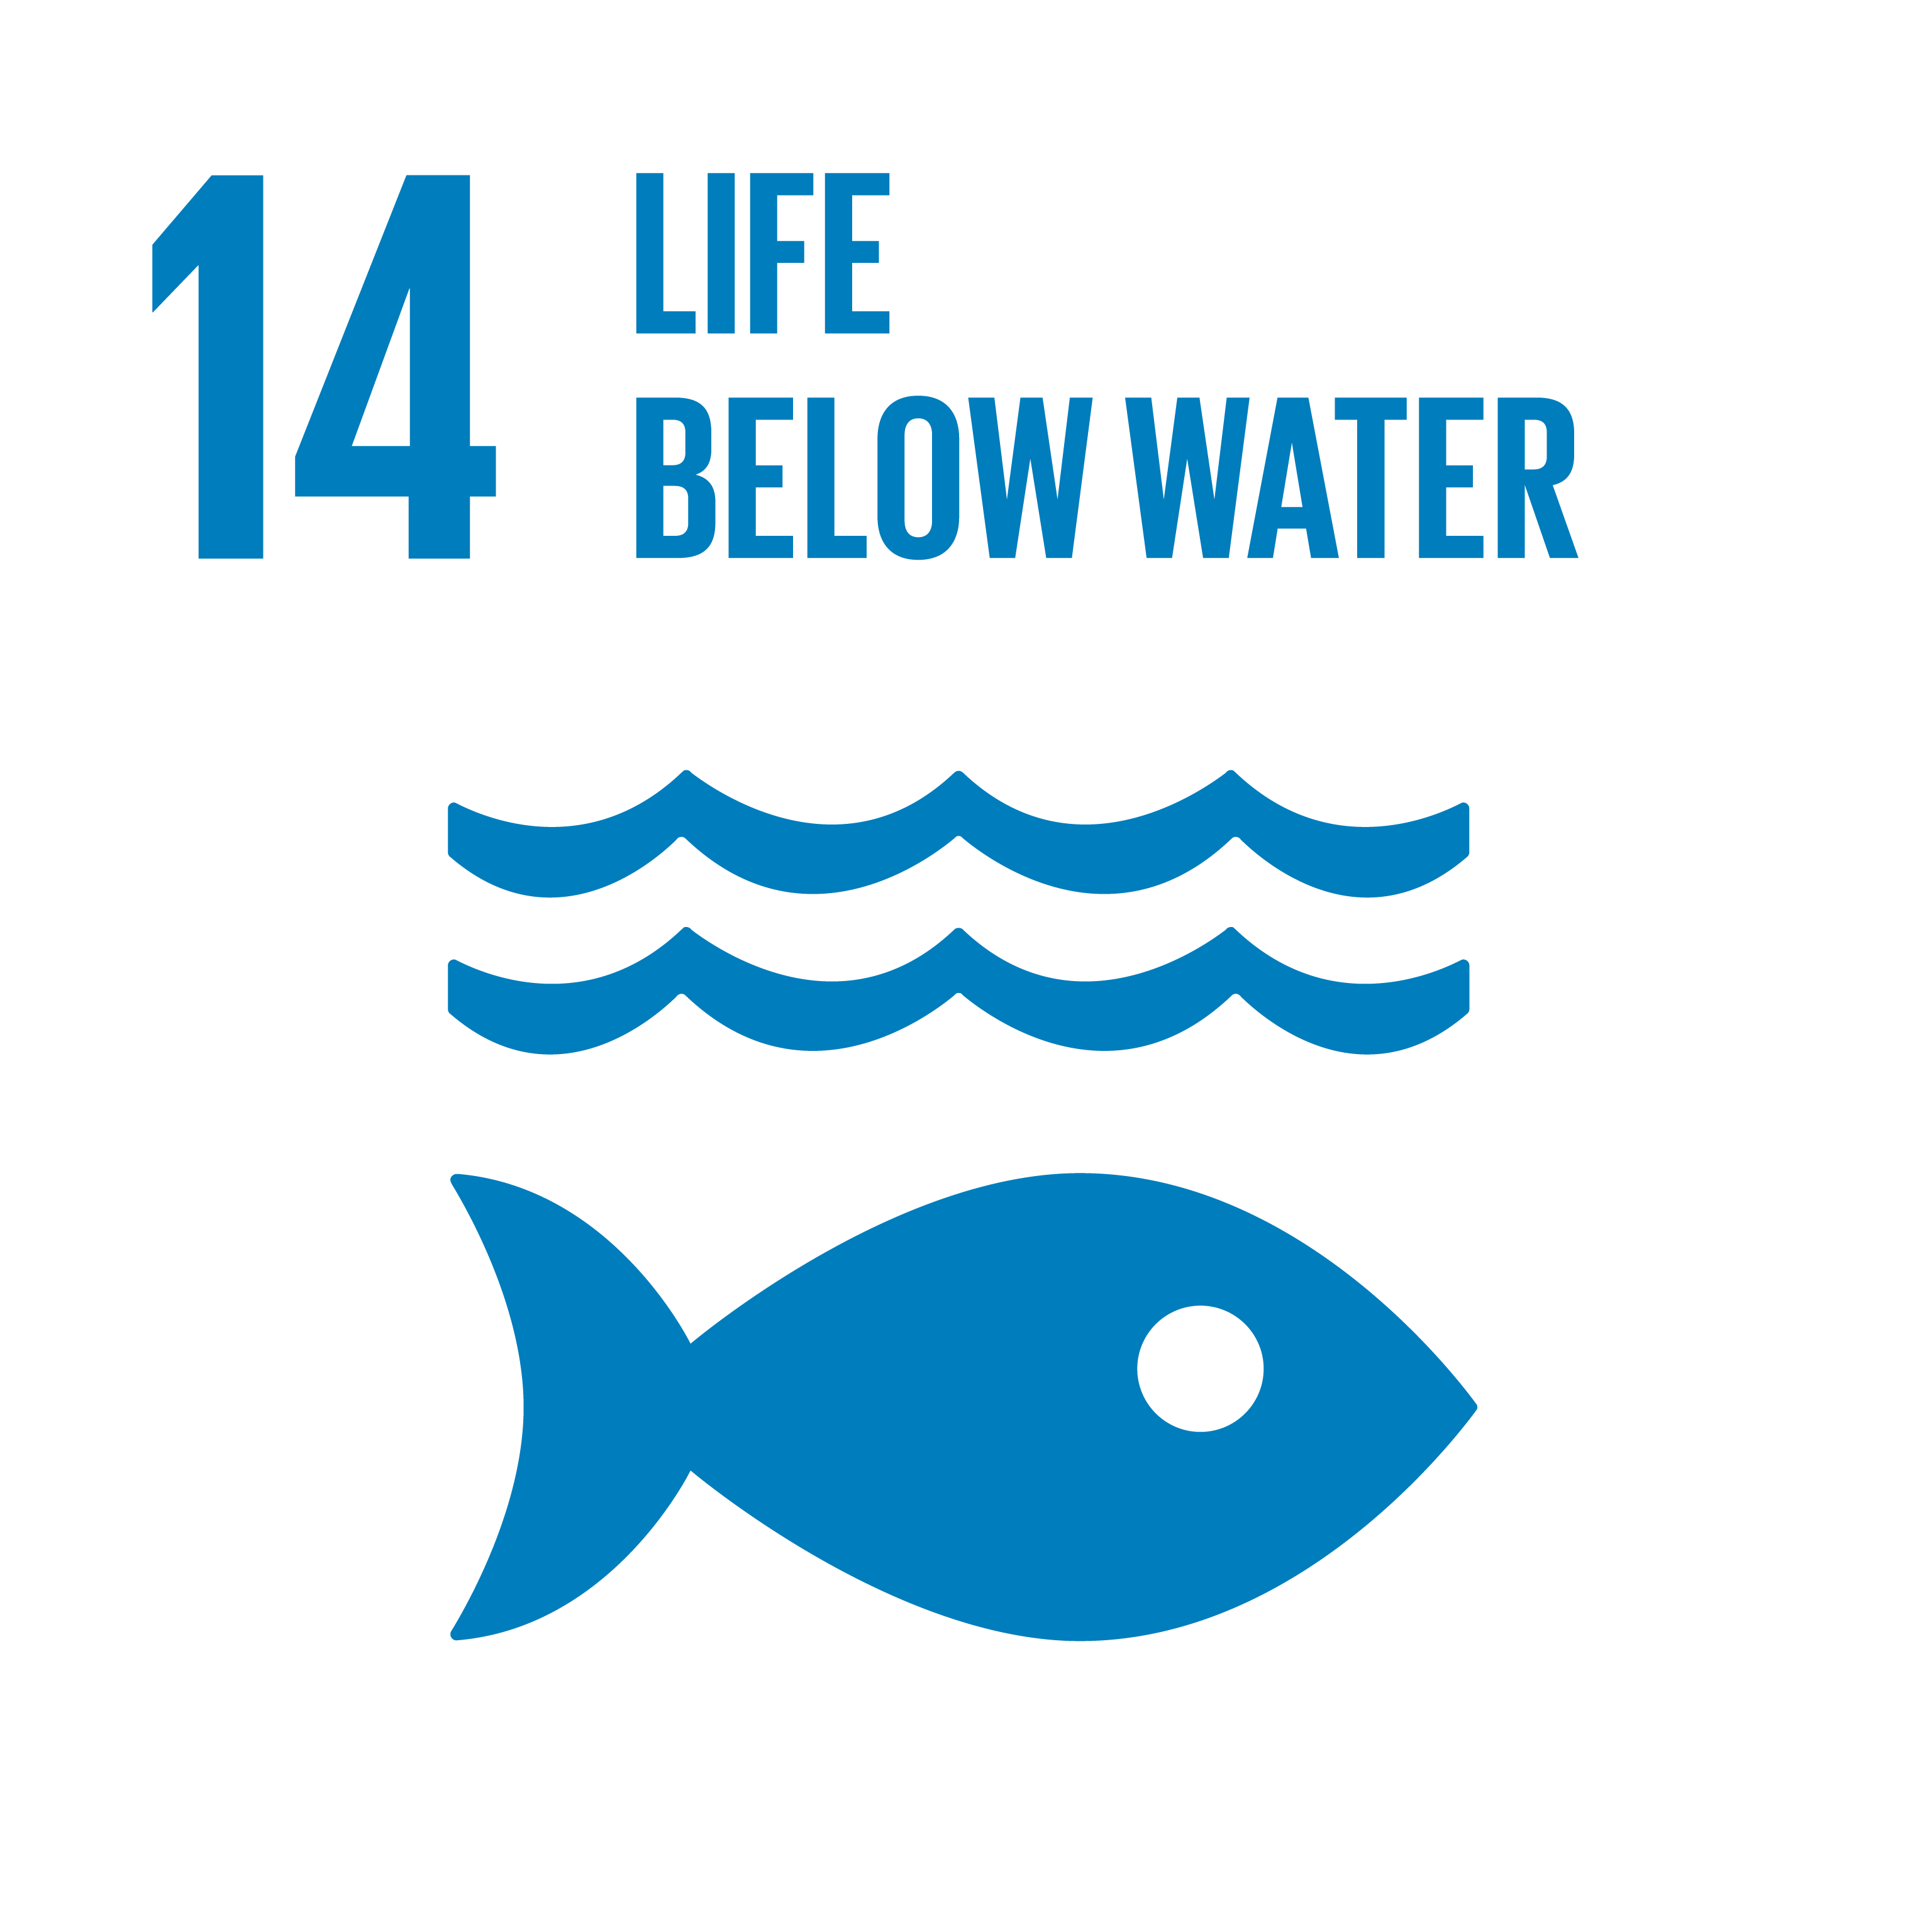 contribution for sustainable development of marine life The report also reviews efforts for the sustainable development of marine resources and underwater cultural heritage, including the conservation and management of marine living resources, non.